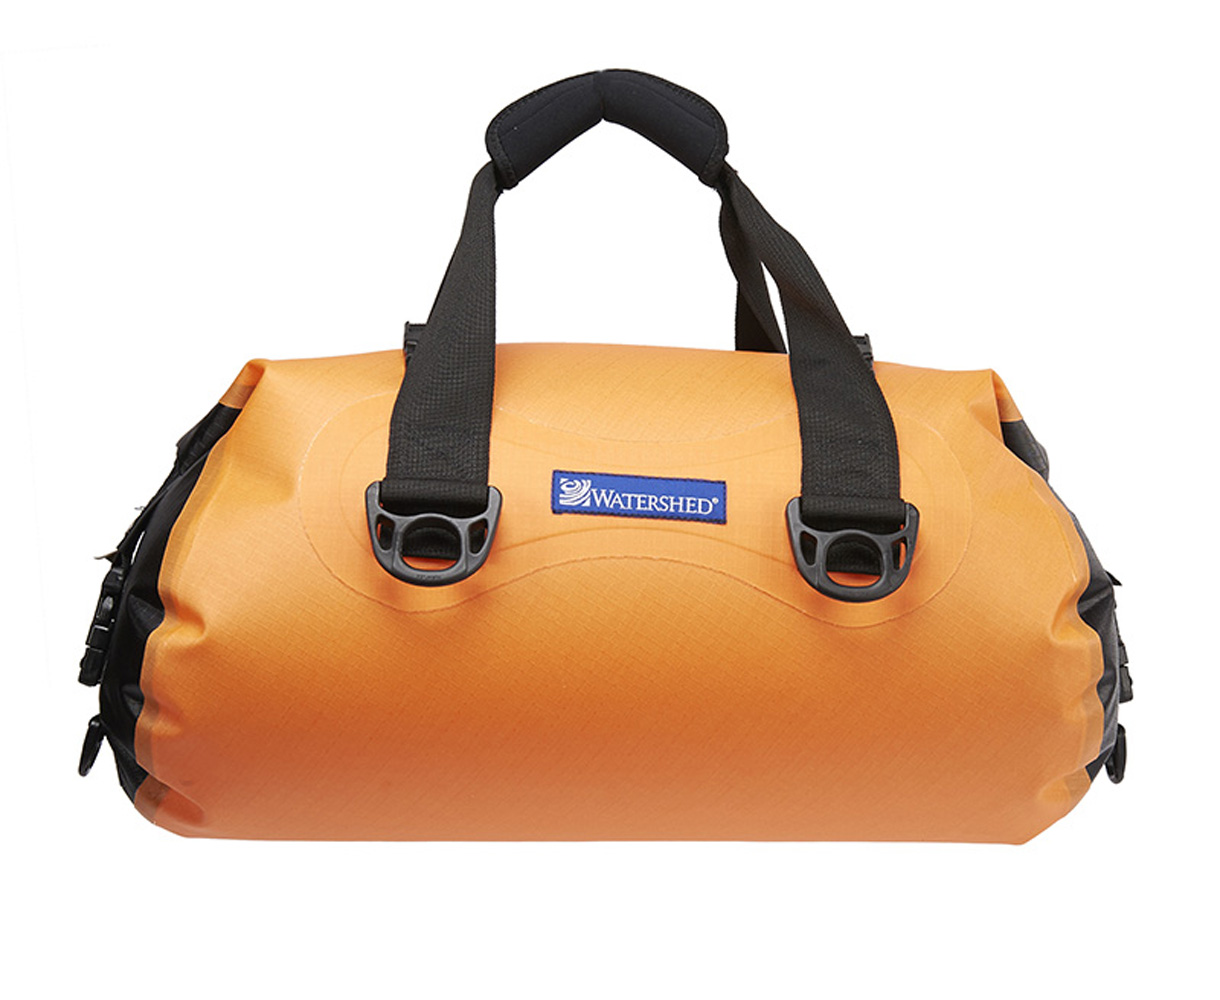 Watershed duffle